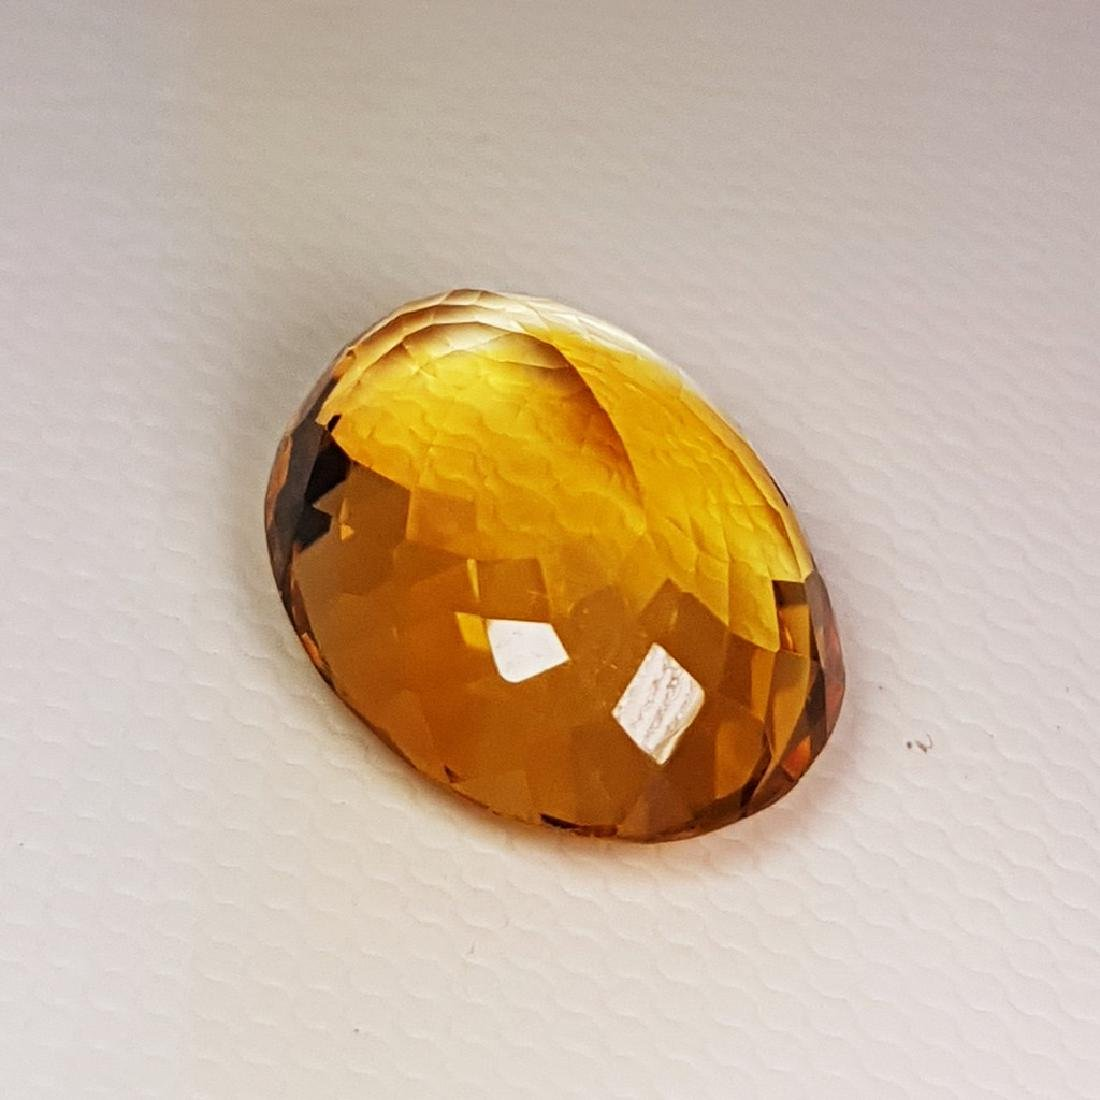 10.03 ct Top Quality Oval Cut Natural Citrine - 3